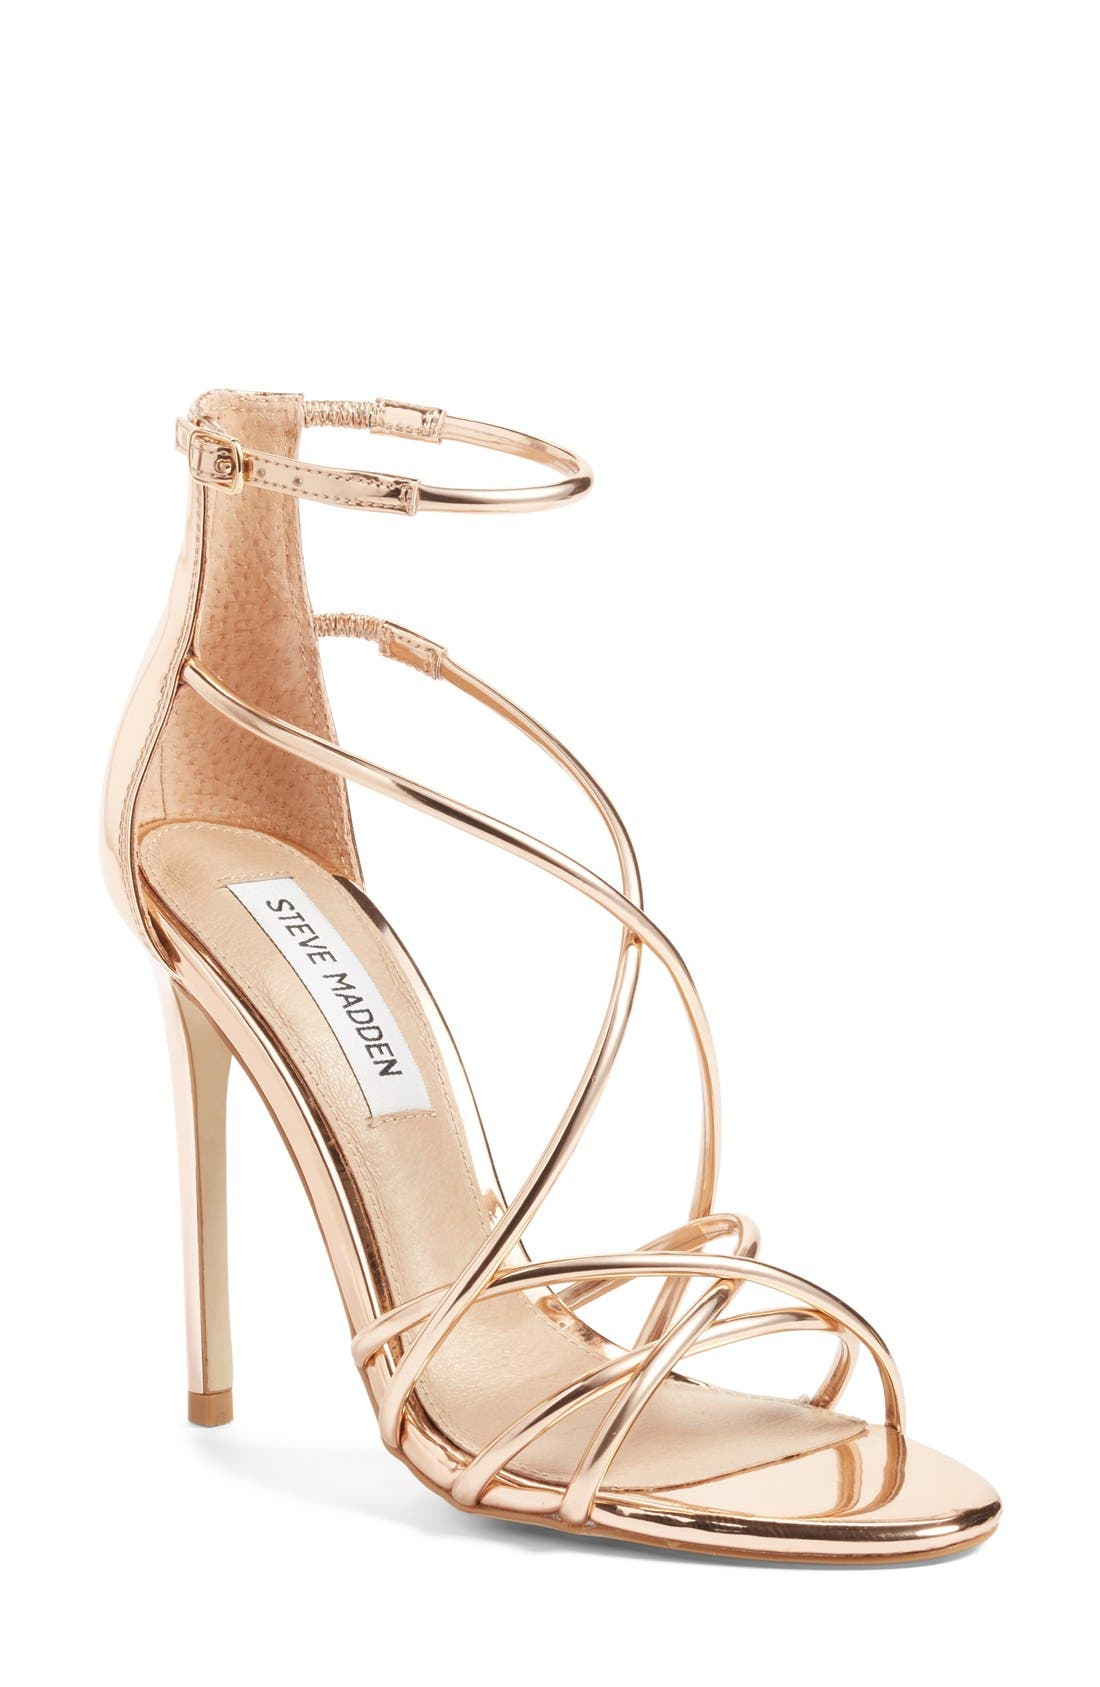 Main Image - Steve Madden Satire Strappy Sandal (Women)